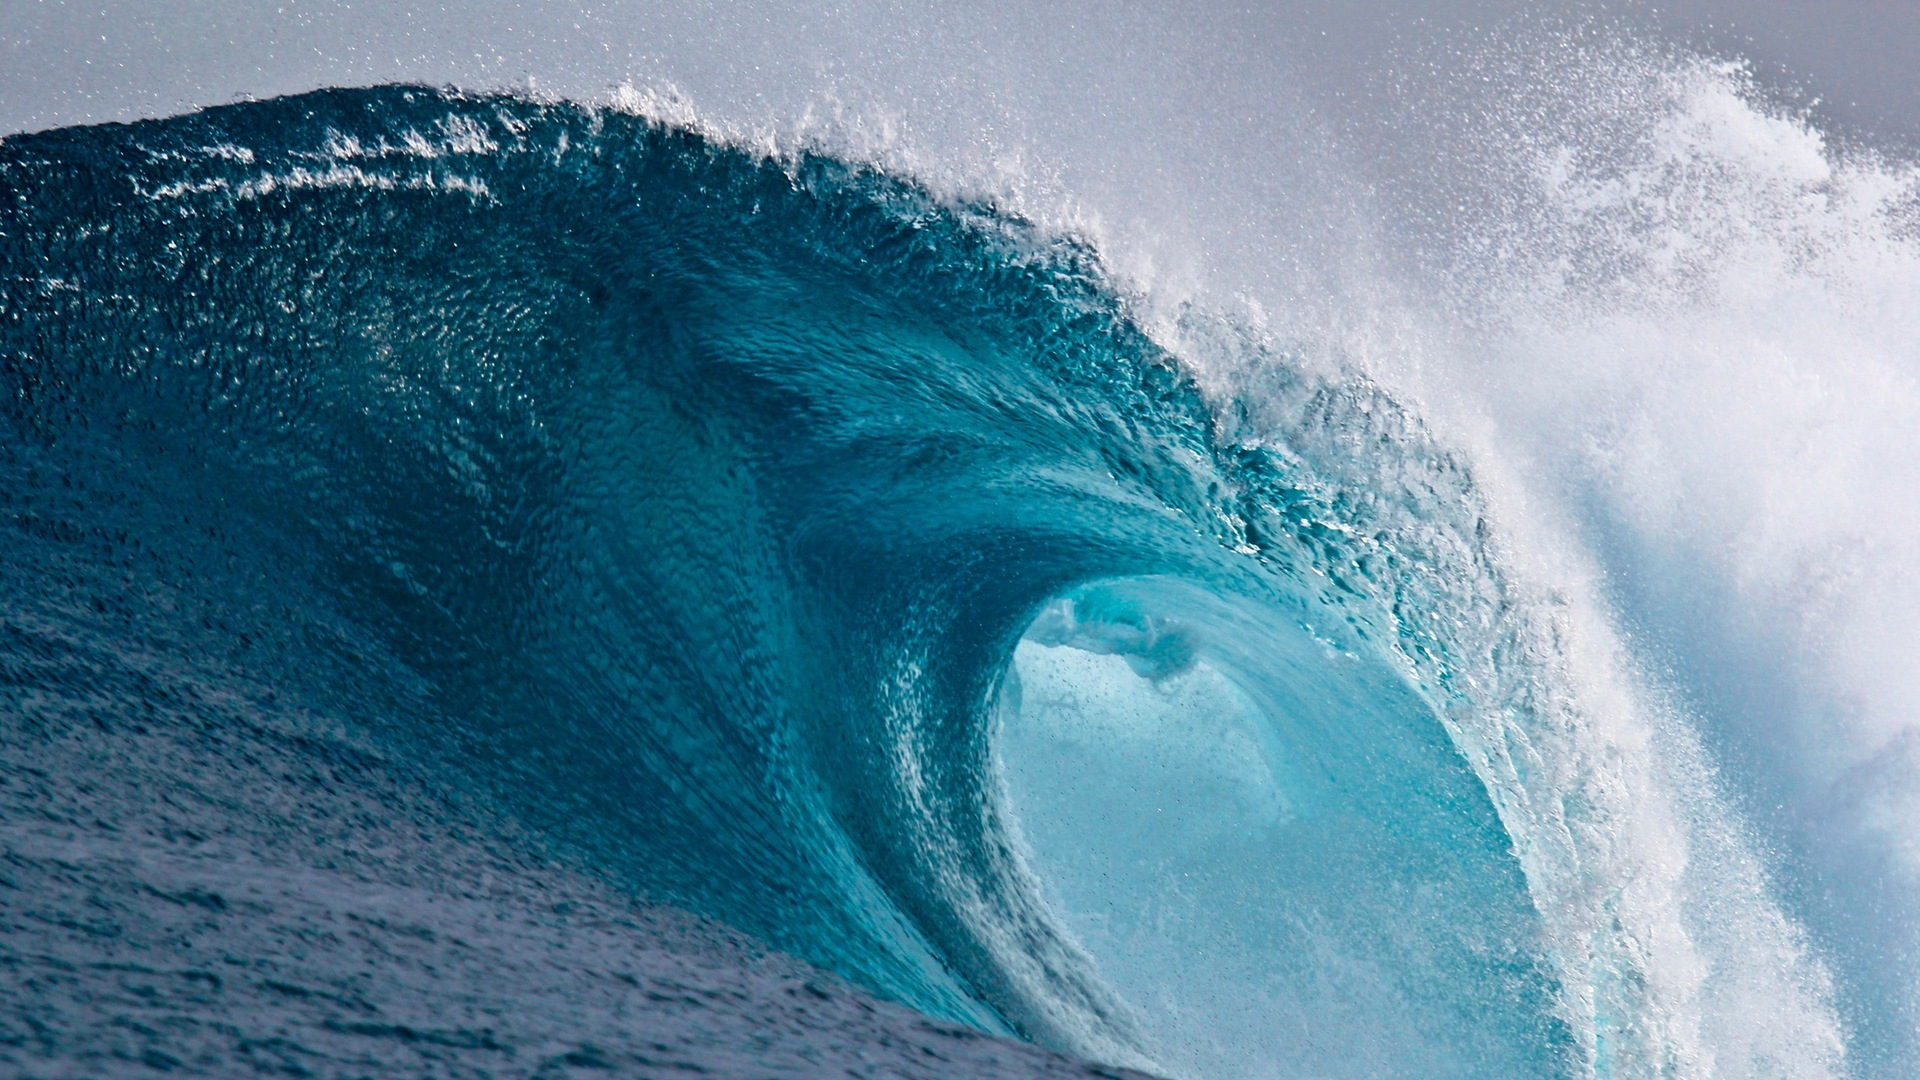 Wave Wallpaper, water, Wave, sea | HD Desktop Wallpapers